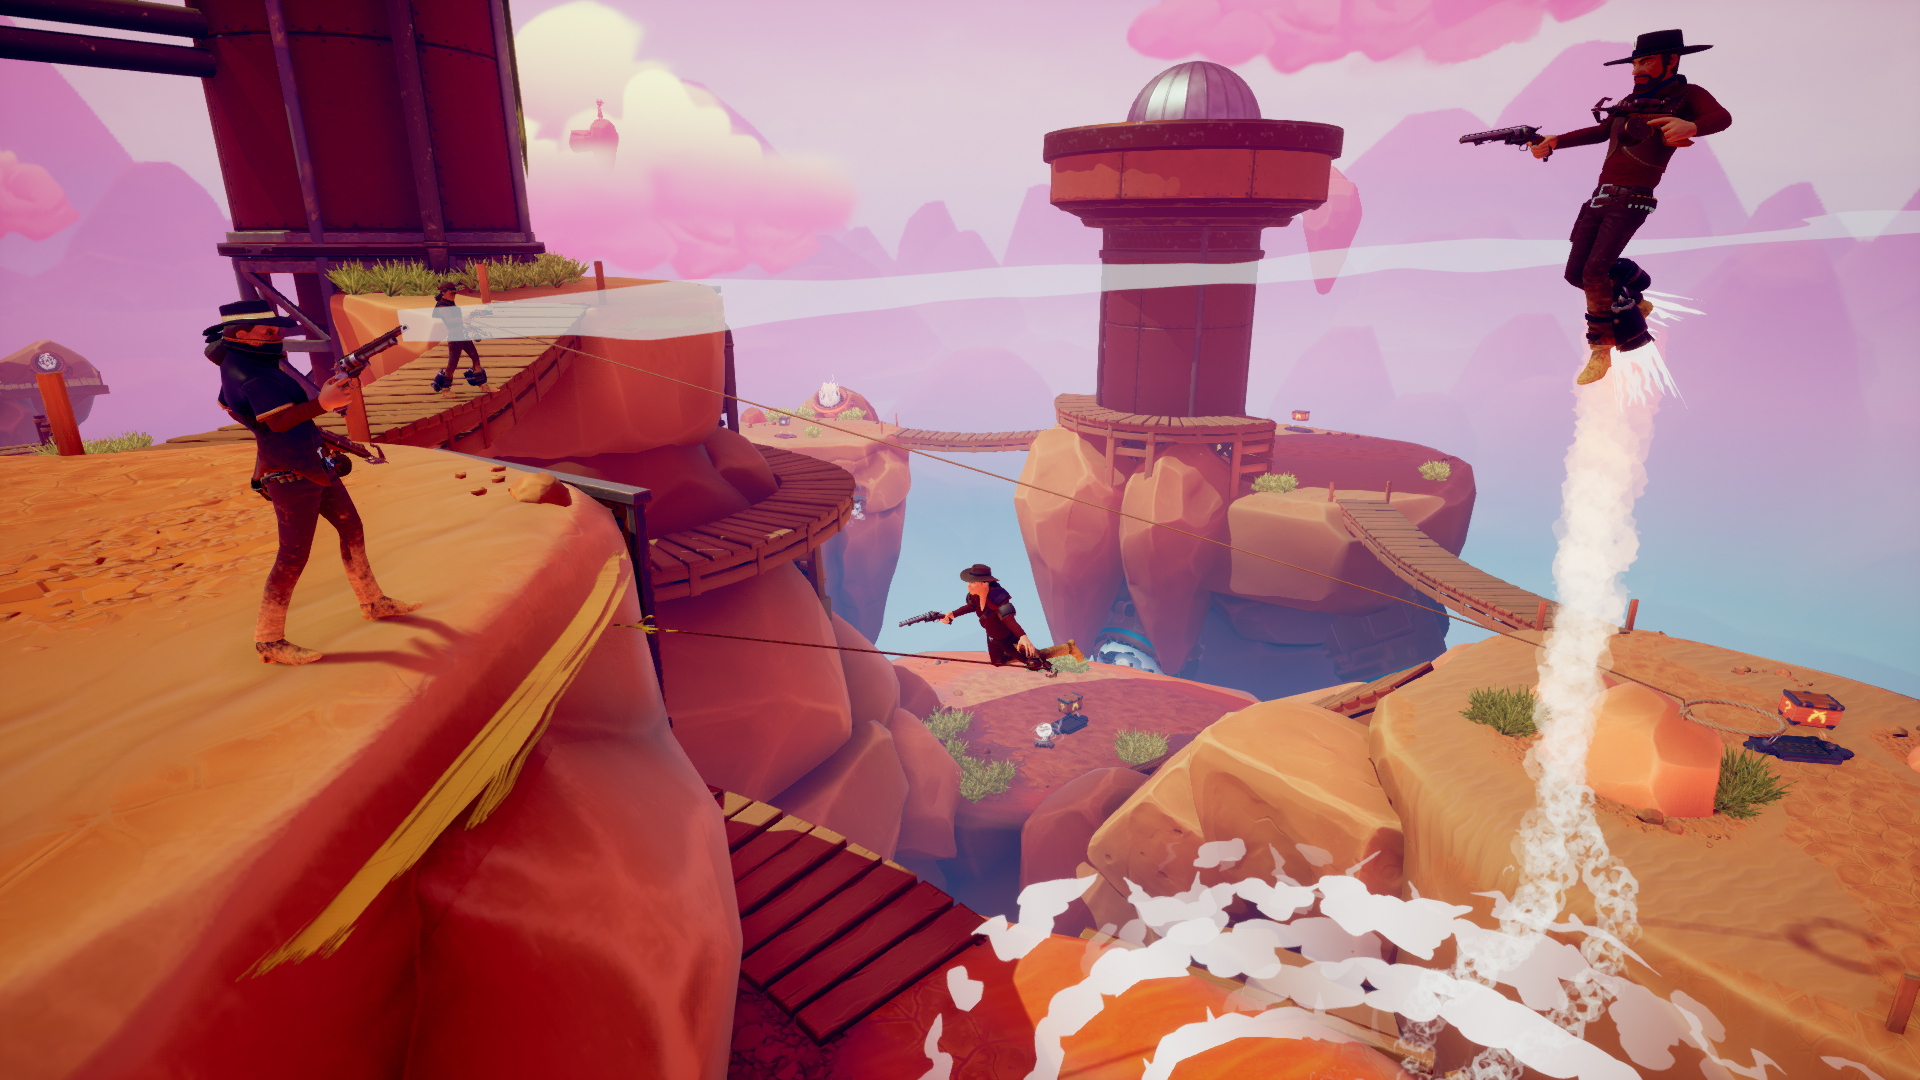 New trailer for Sky Noon, and sign-ups for closed beta begin today.